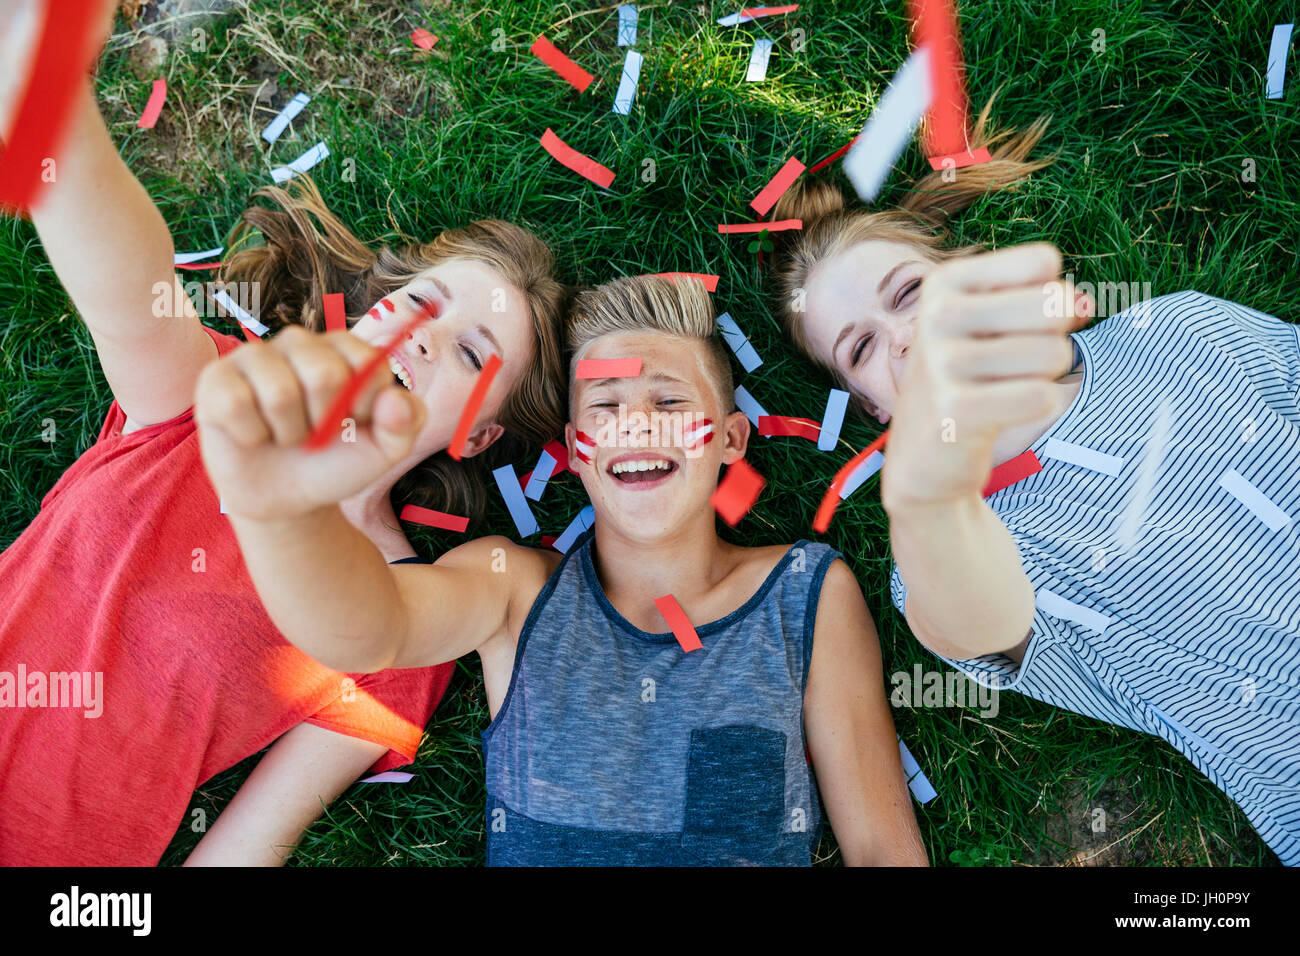 Austria Fans with colours in face celebrating together, Vienna, Austria Stock Photo